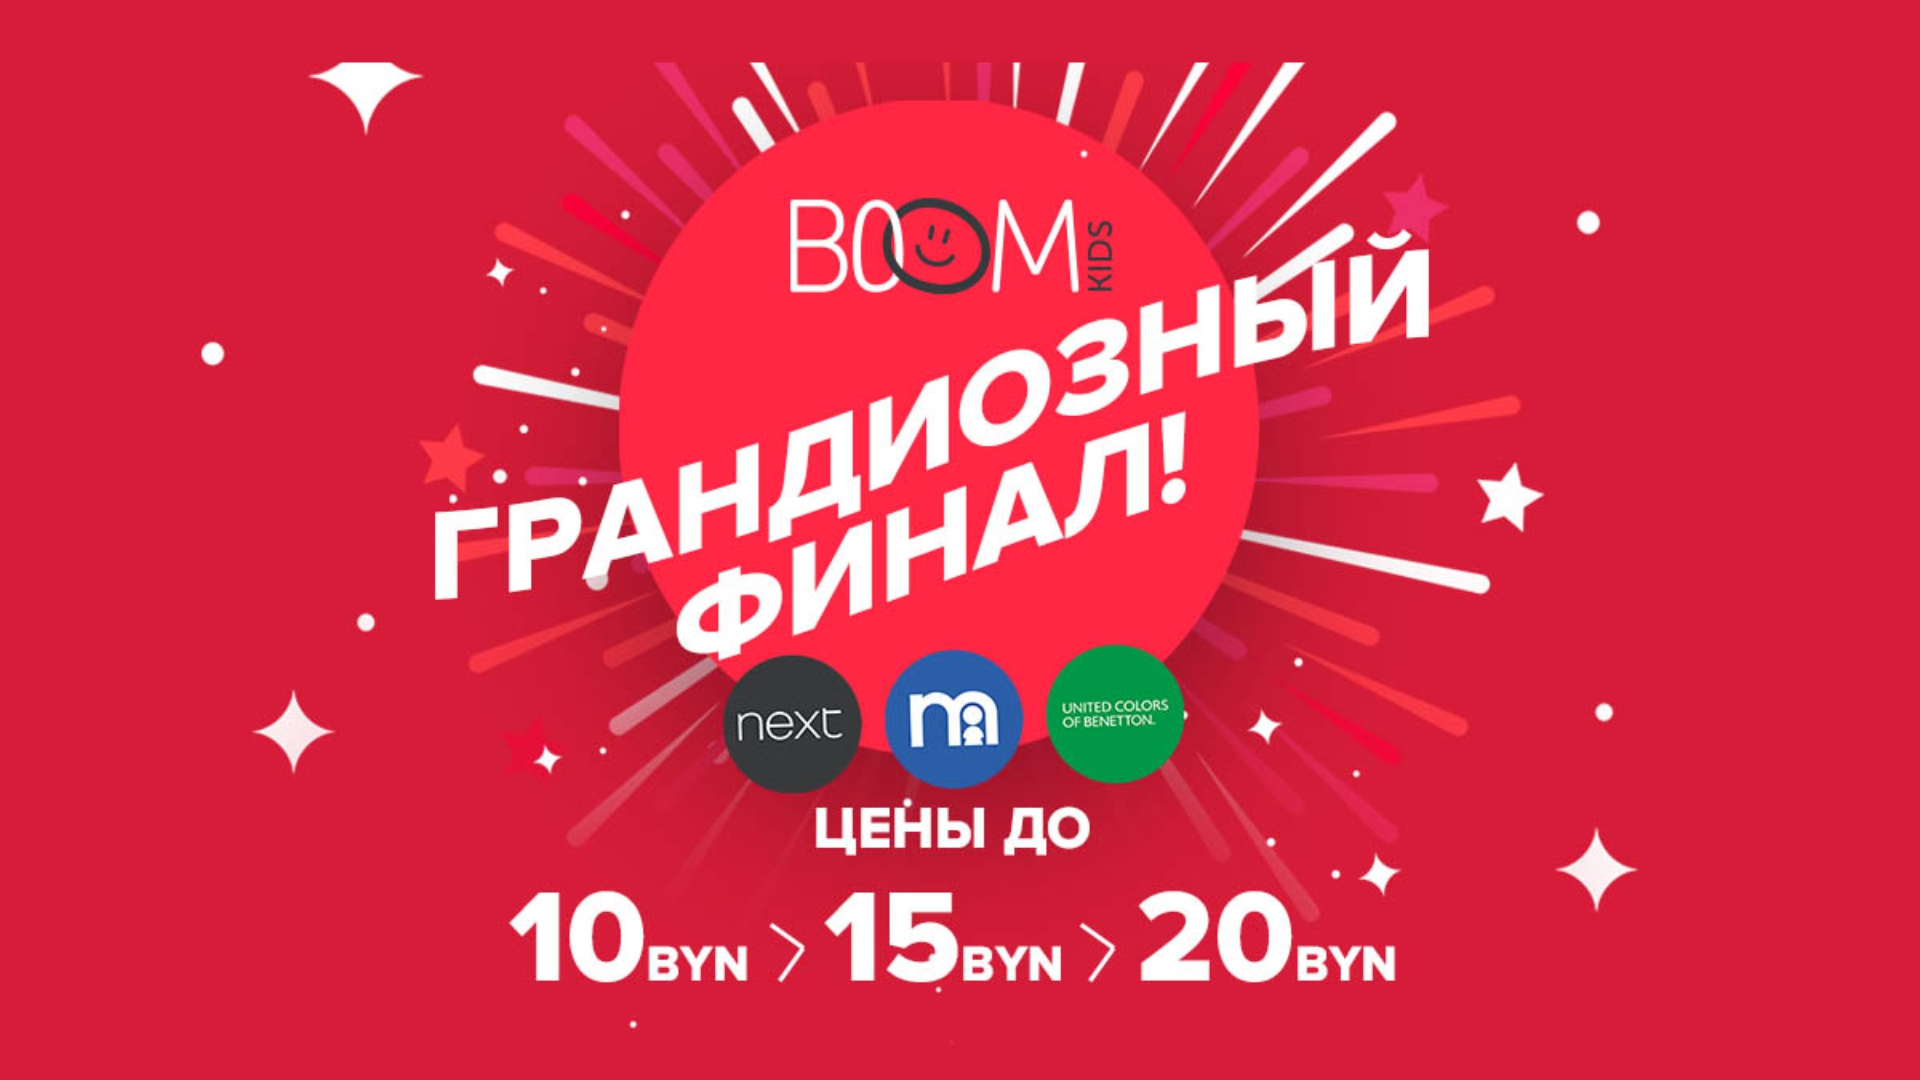 Цены до 10, 15, 20 BYN в Mothercare, Next и United colors of Benetton